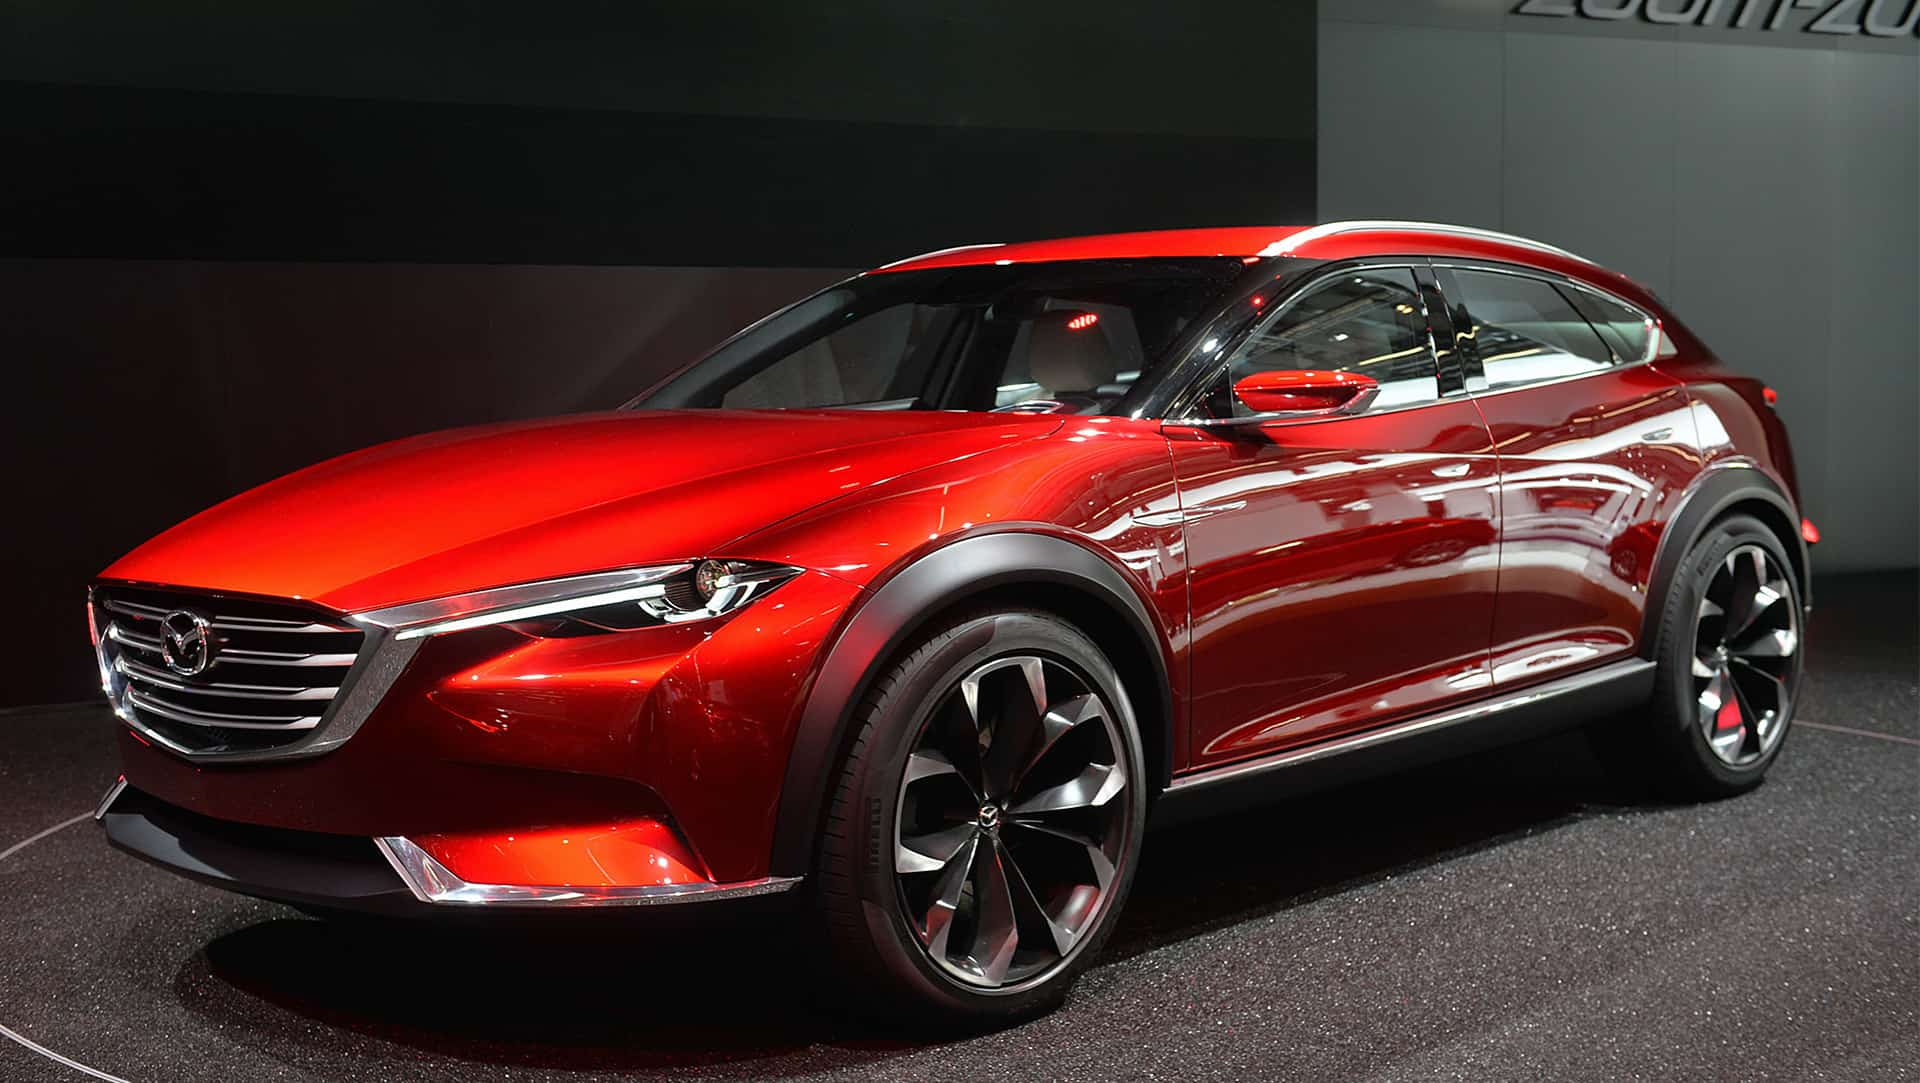 Mazda's Game Changer